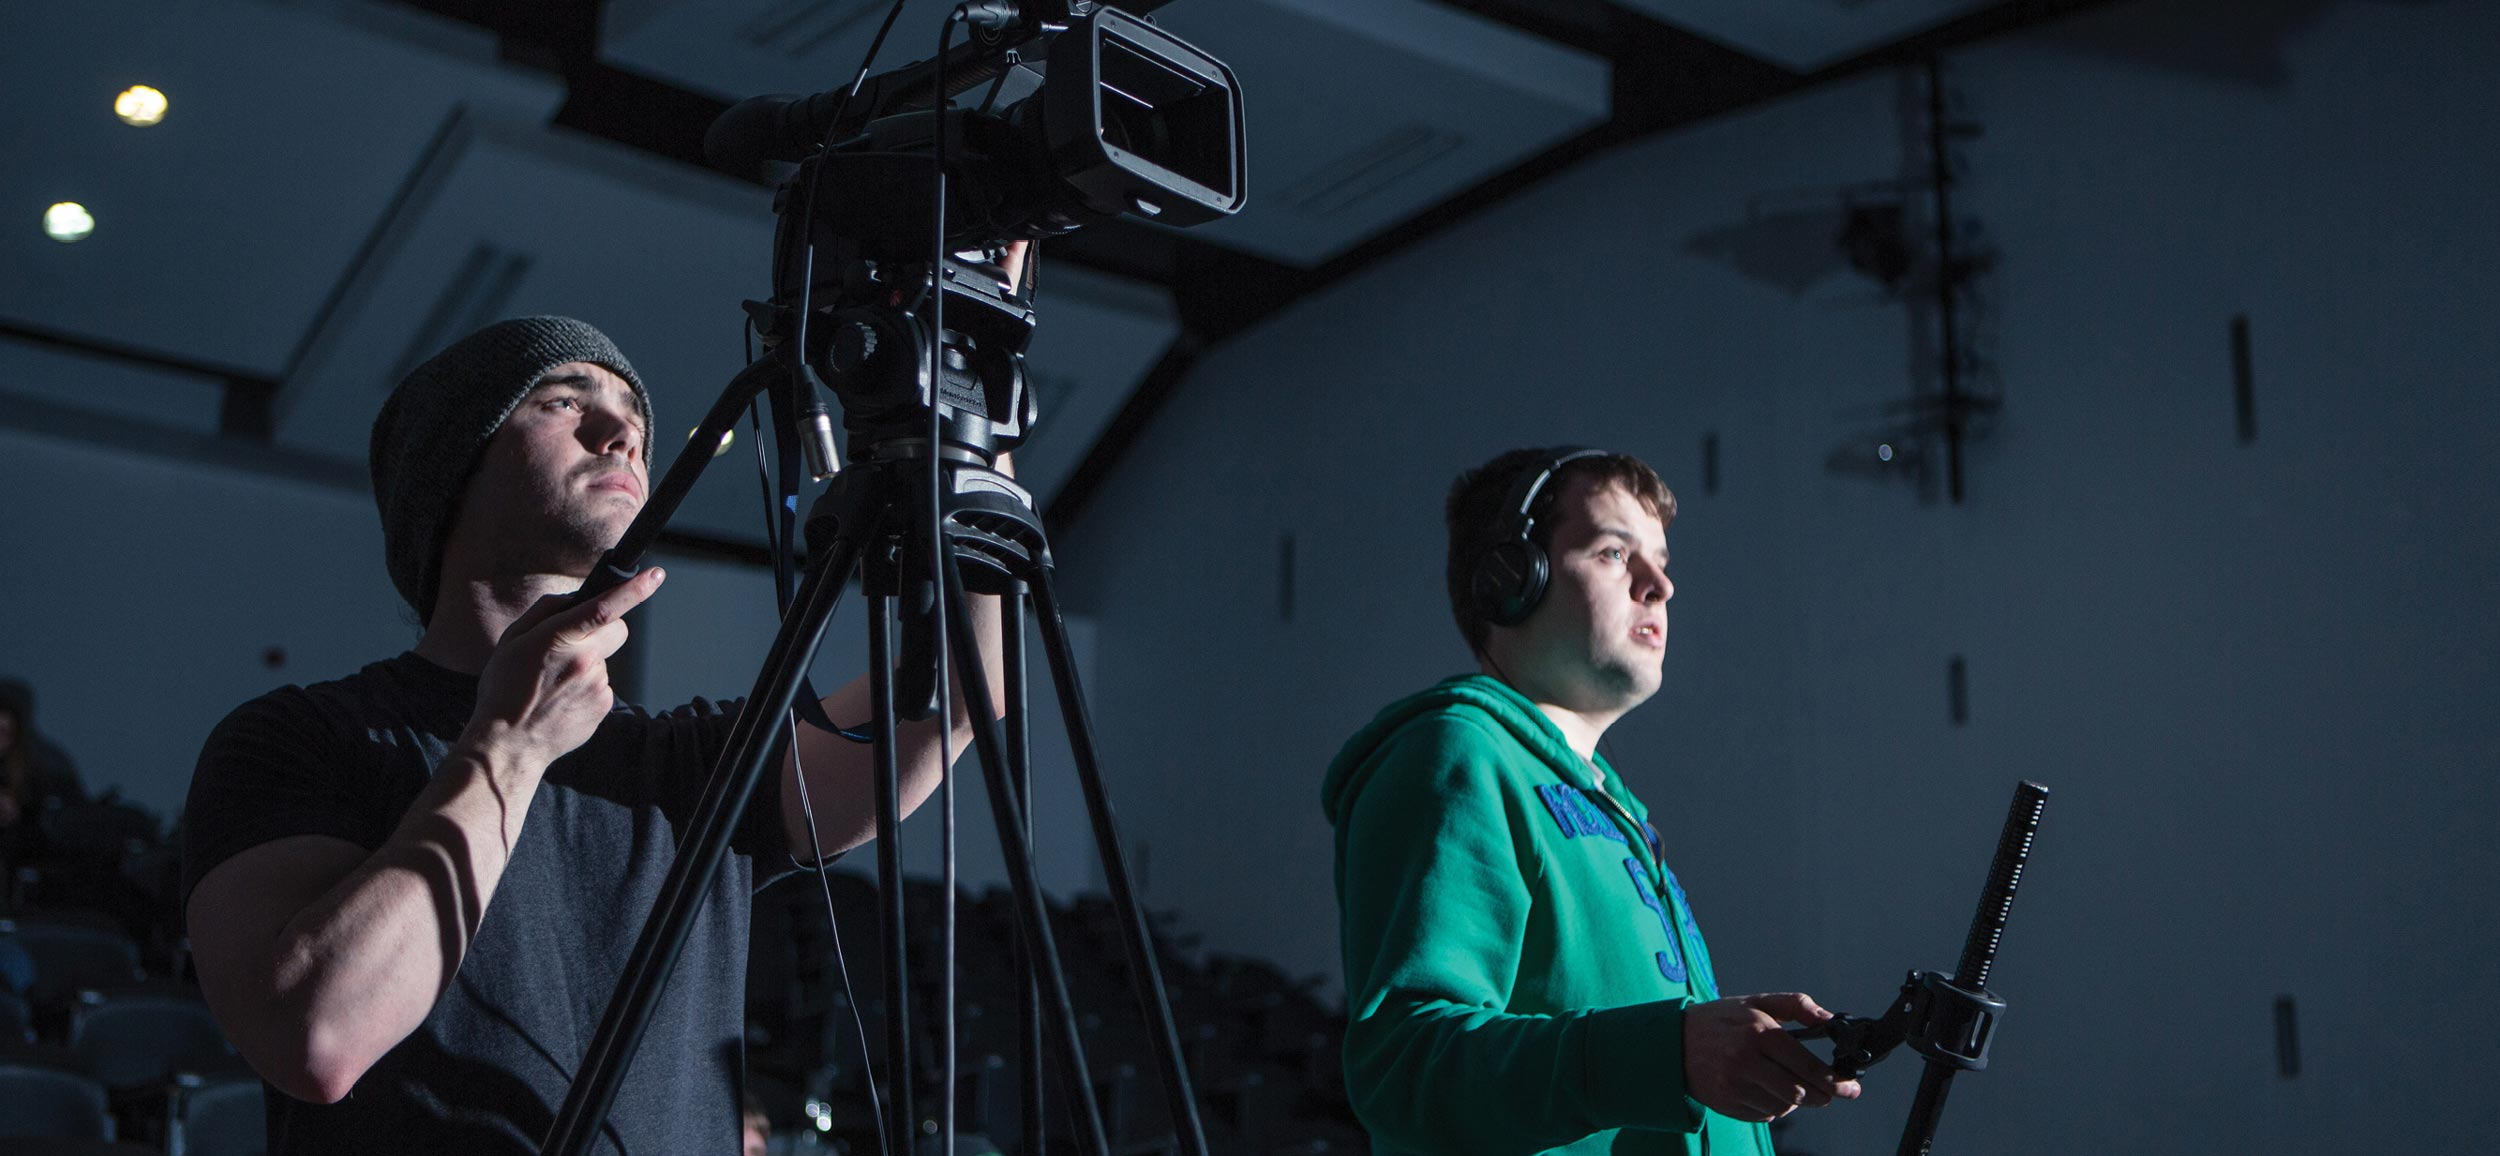 LIT Electrical and Electronic Engineering Video and photography production of students working with video camera and microphones.